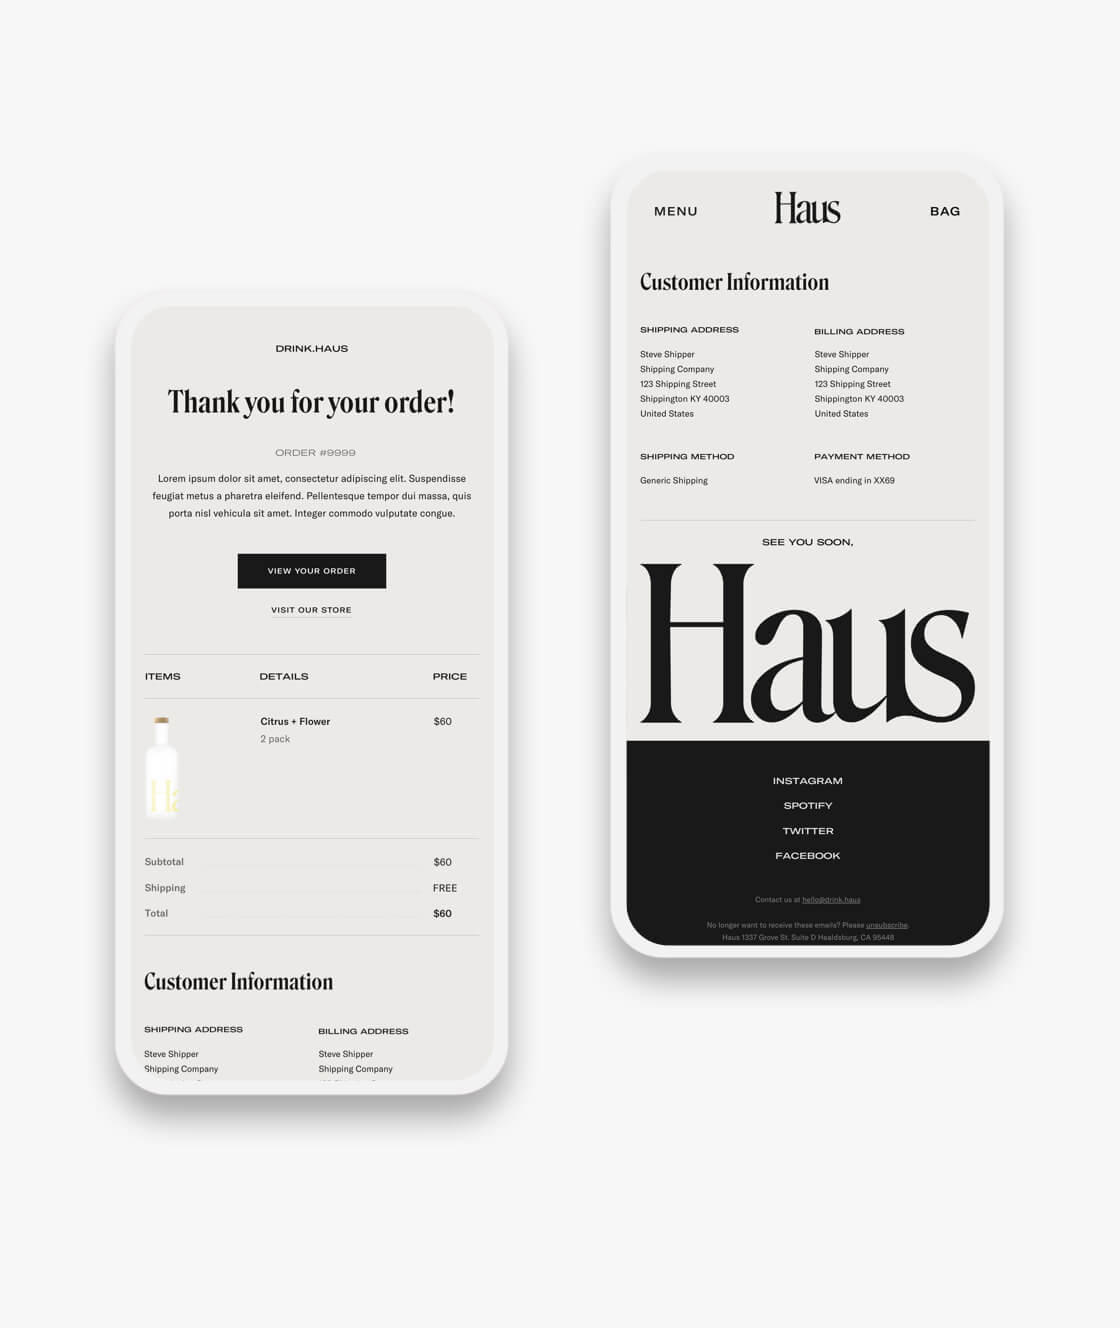 haus shopify website order confirmation and account pages on mobile